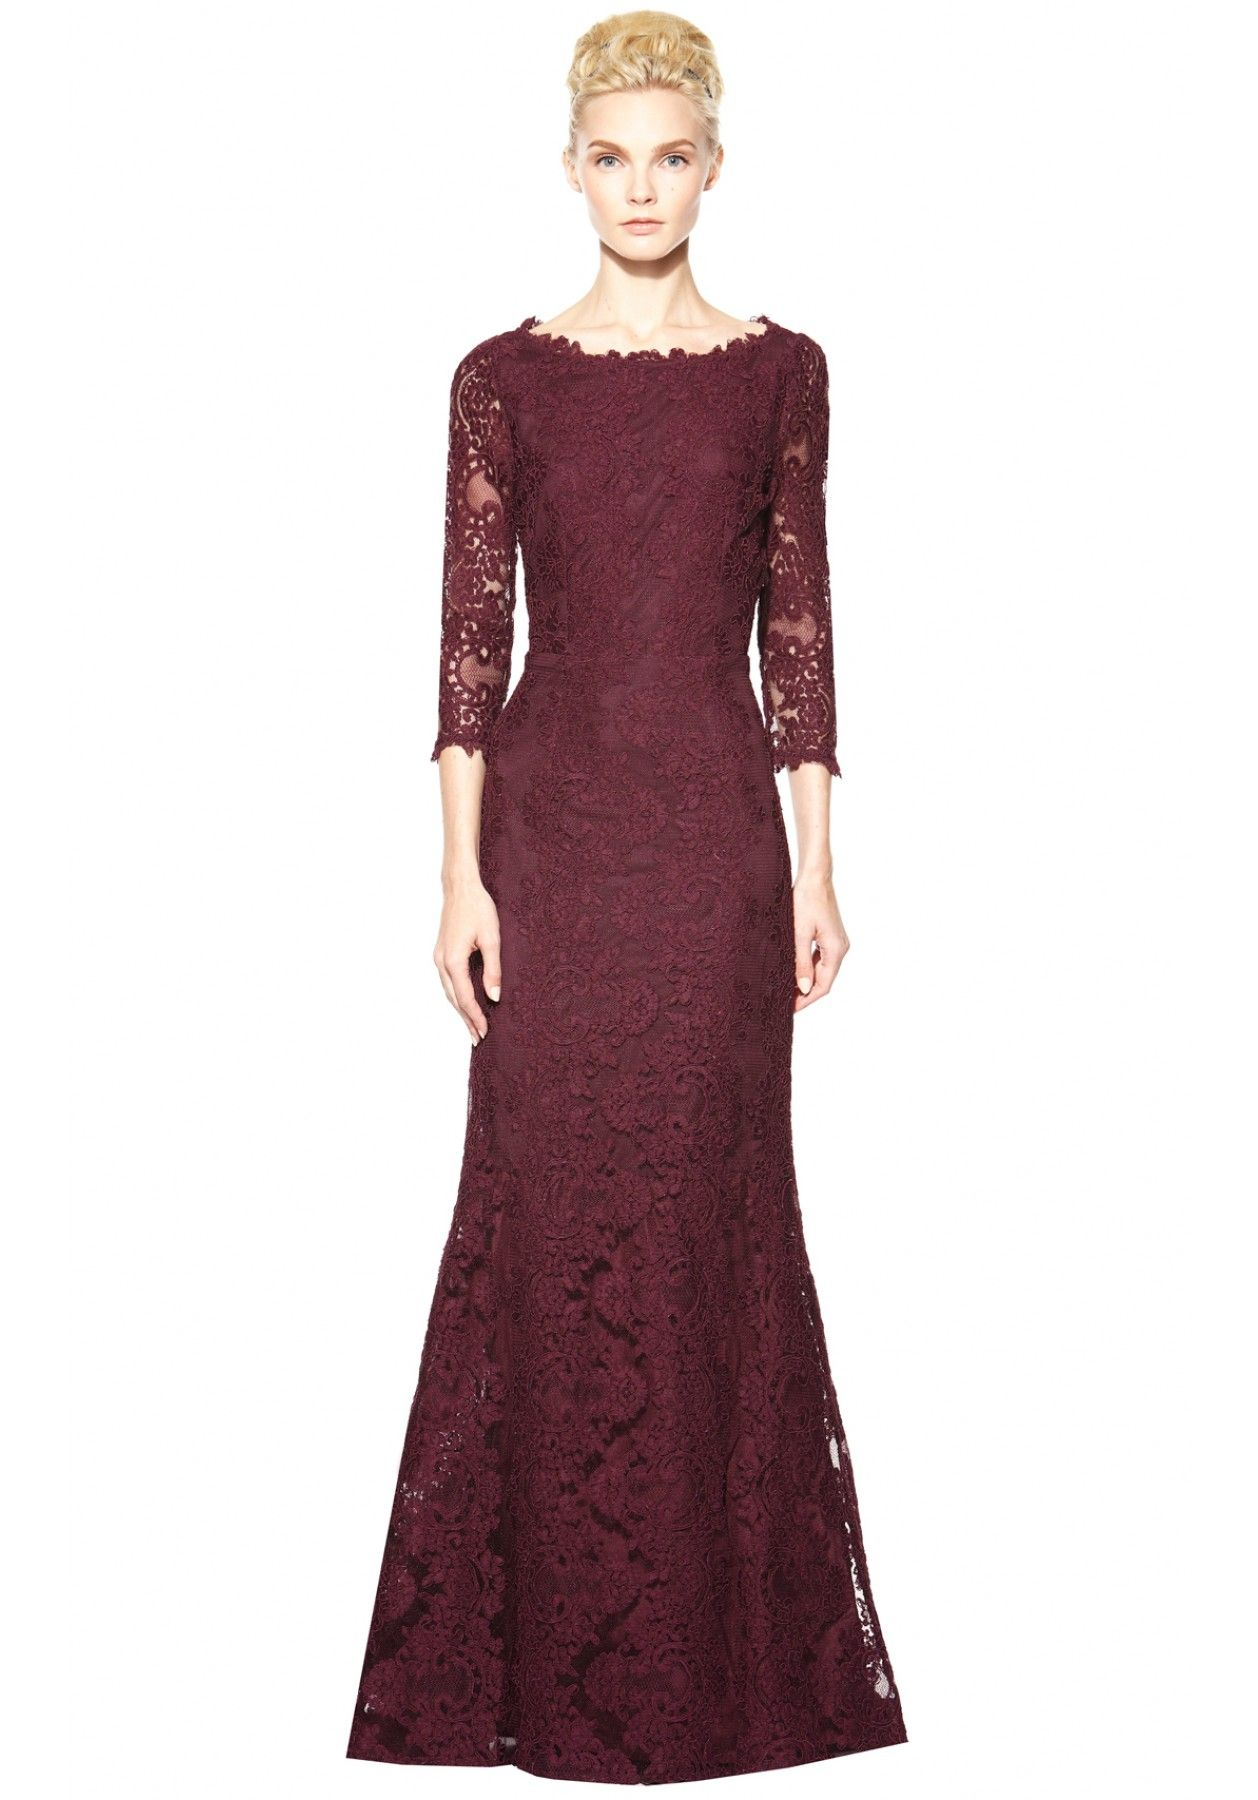 Jae keyhole open back long gown alice olivia ideas for the